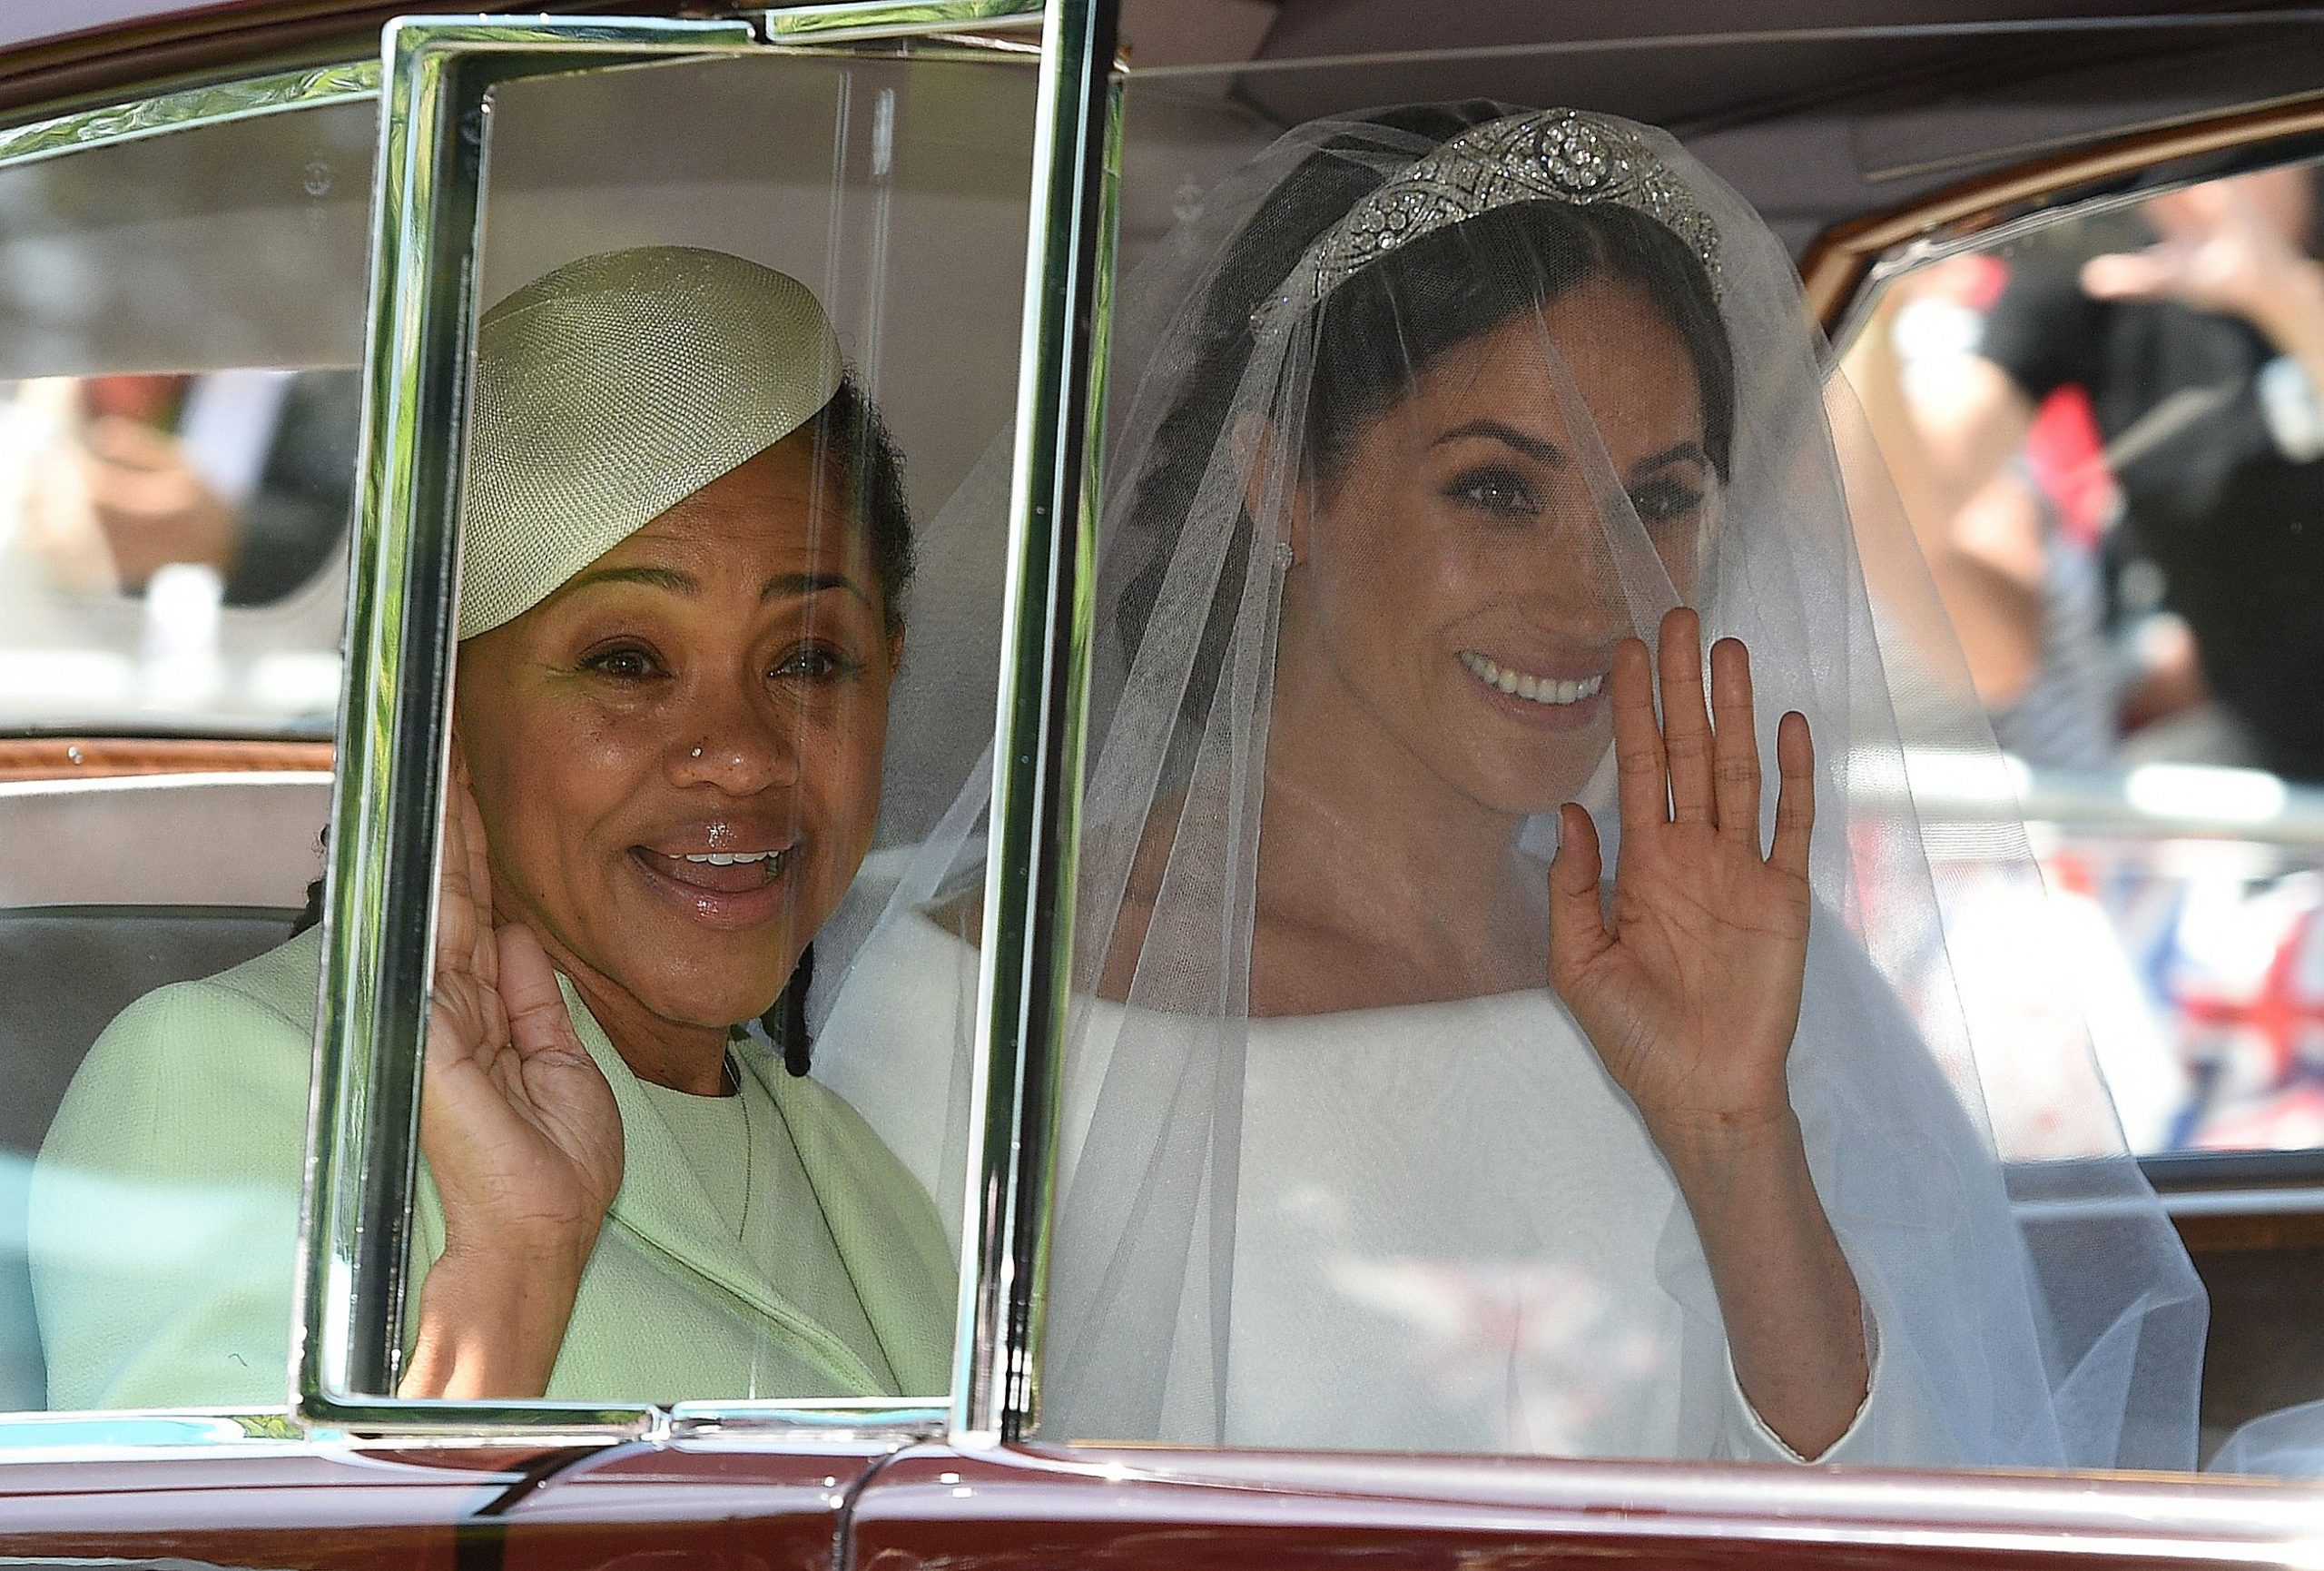 Meghan Markle and one of her parents - mum Doria on her wedding day